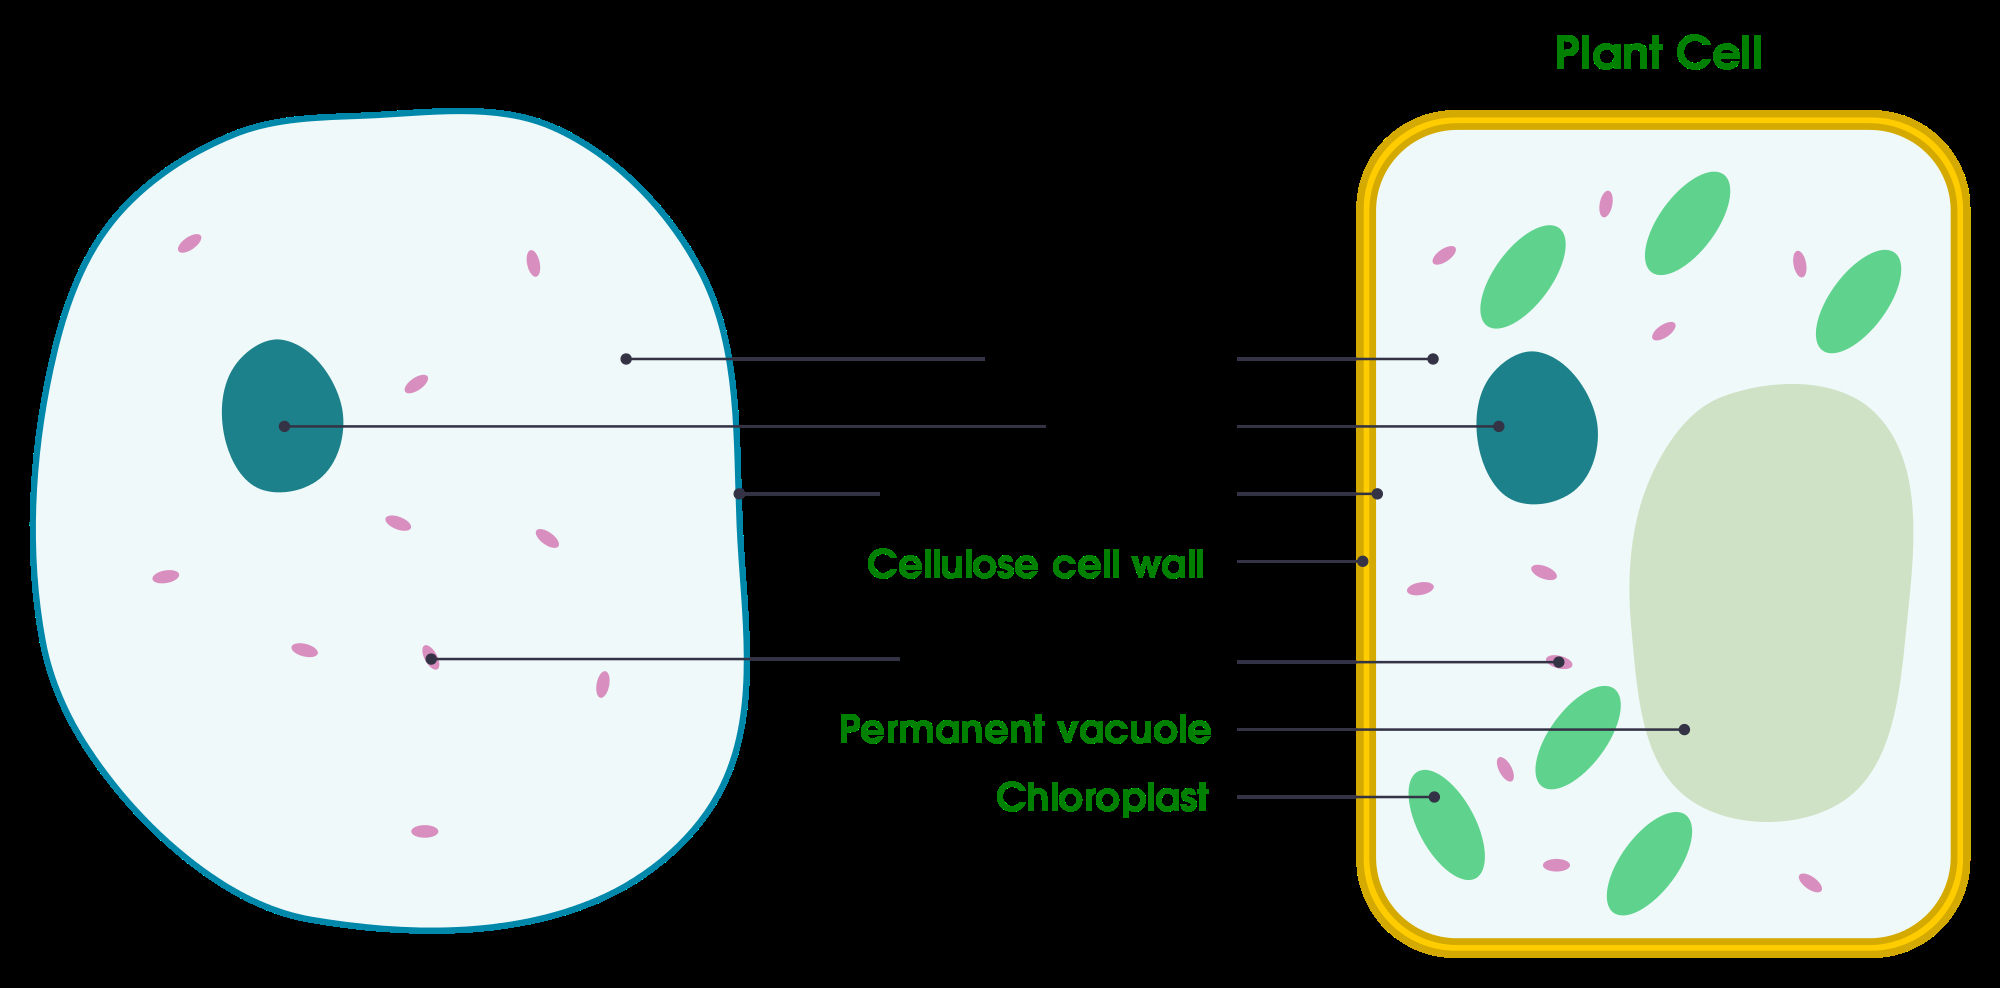 Animal Cell Diagram Filesimple Diagram Of Animal Cell Ensvg Wikimedia Commons